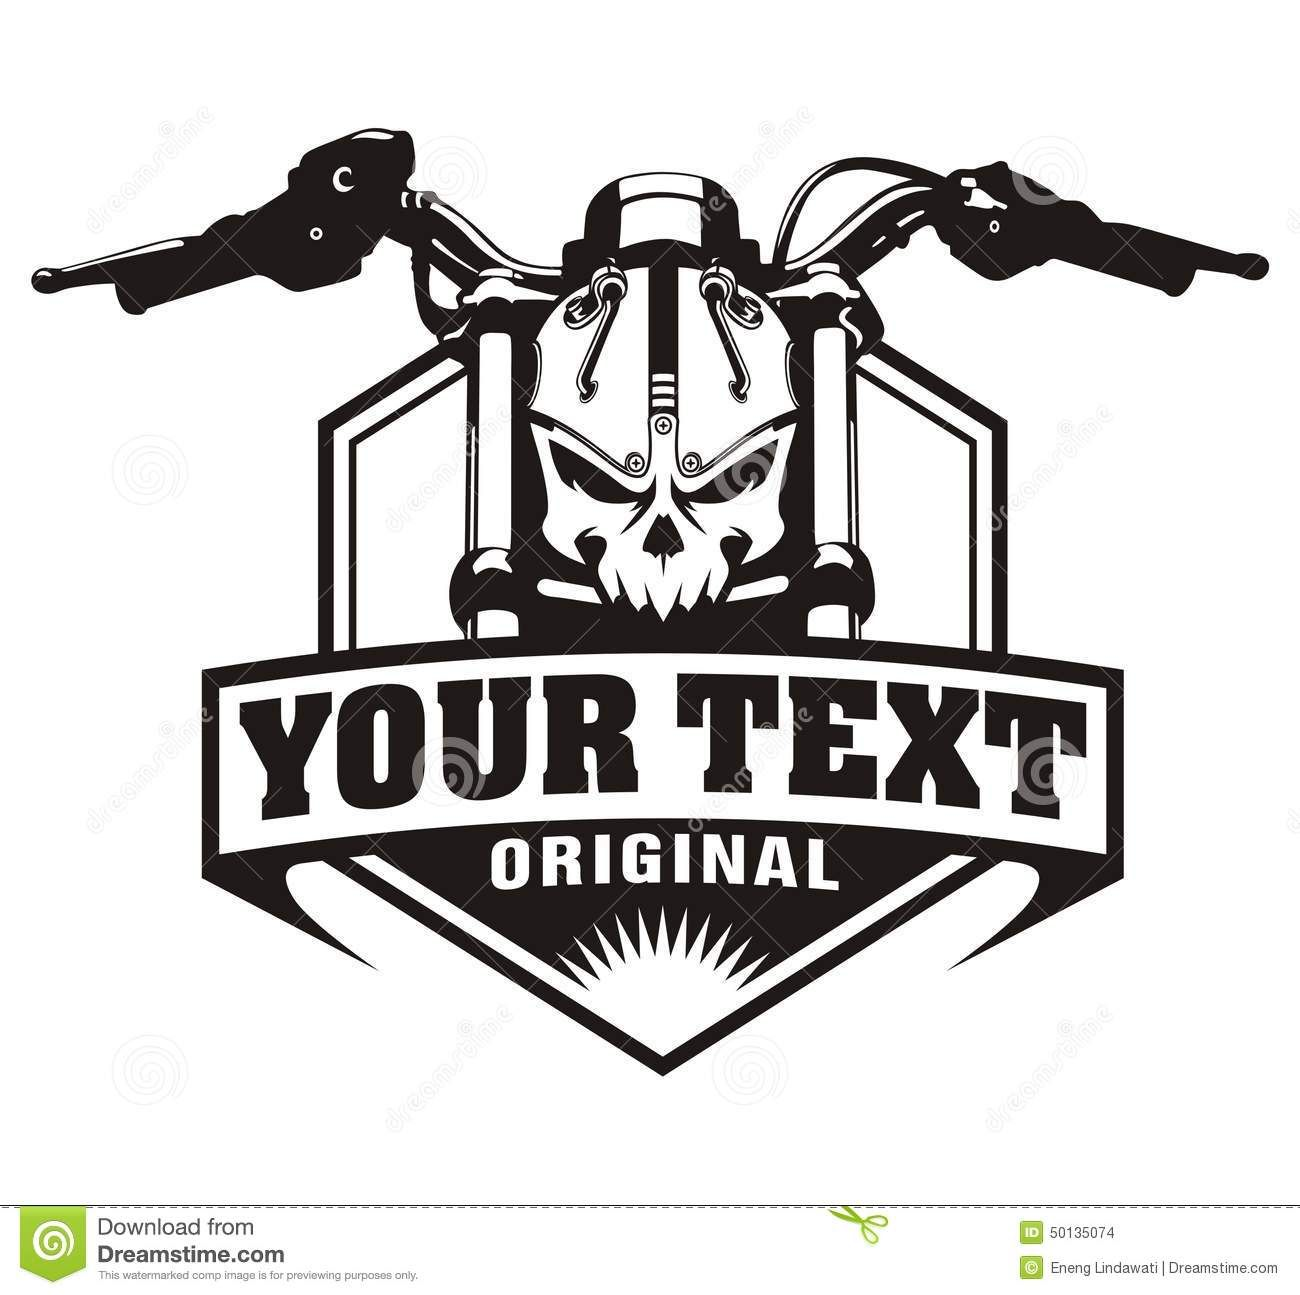 Image Result For Pencil Drawings Harley Davidson Symbol Free Clip Art Free Art Harley Davidson